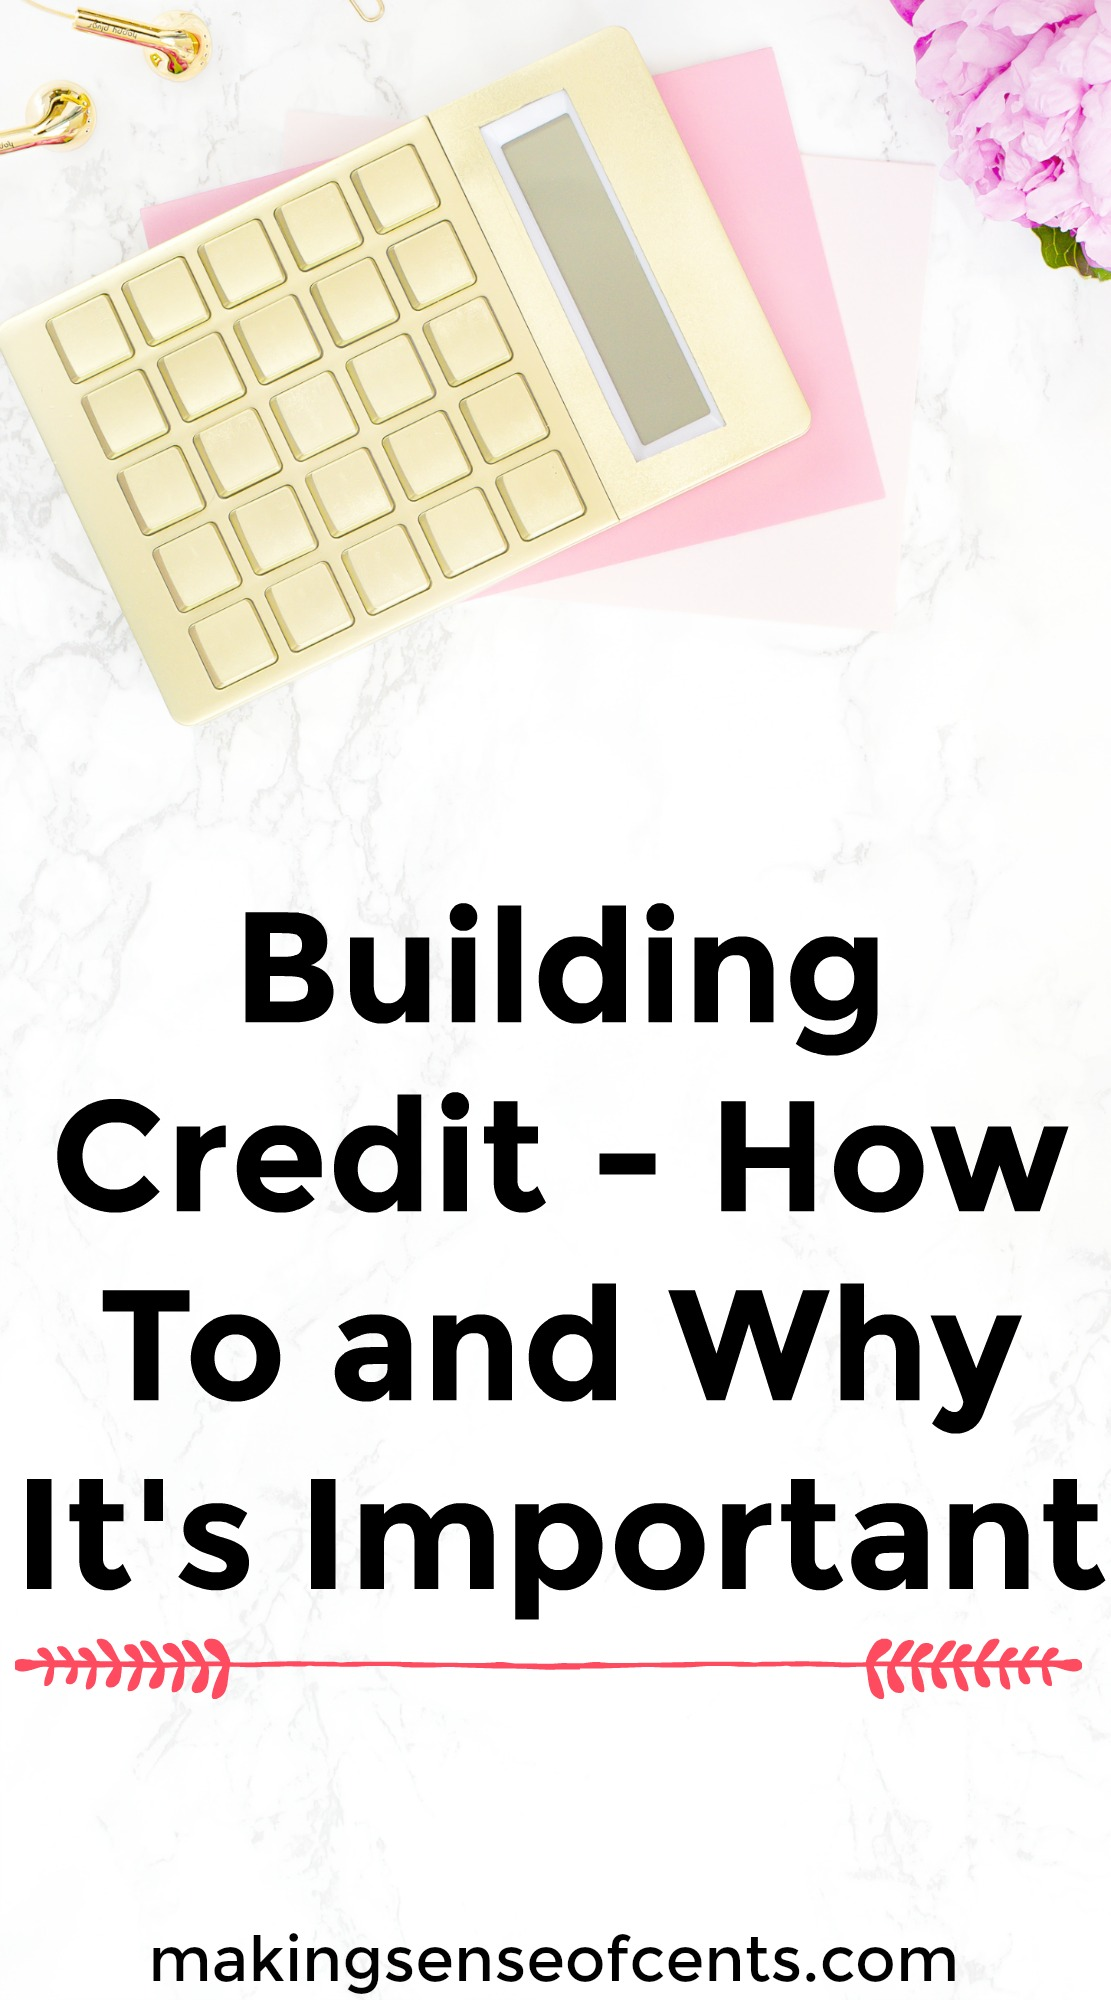 Building Credit - How To and Why It's Important